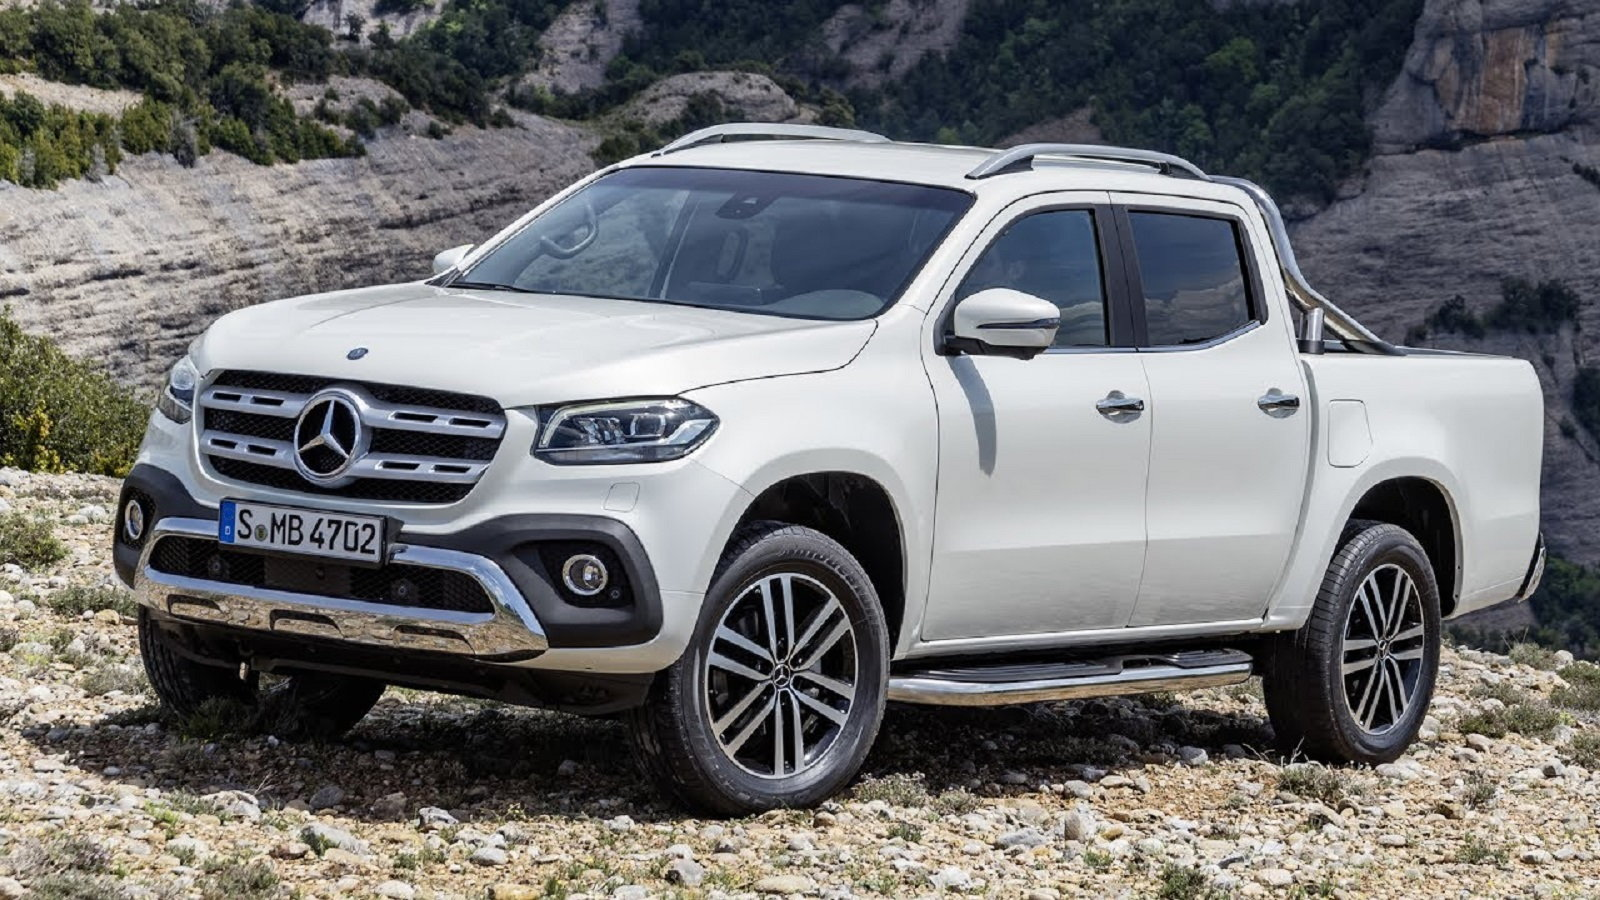 Mercedes-Benz's X Class Pickup Truck Looks to Attack the U.S. Market